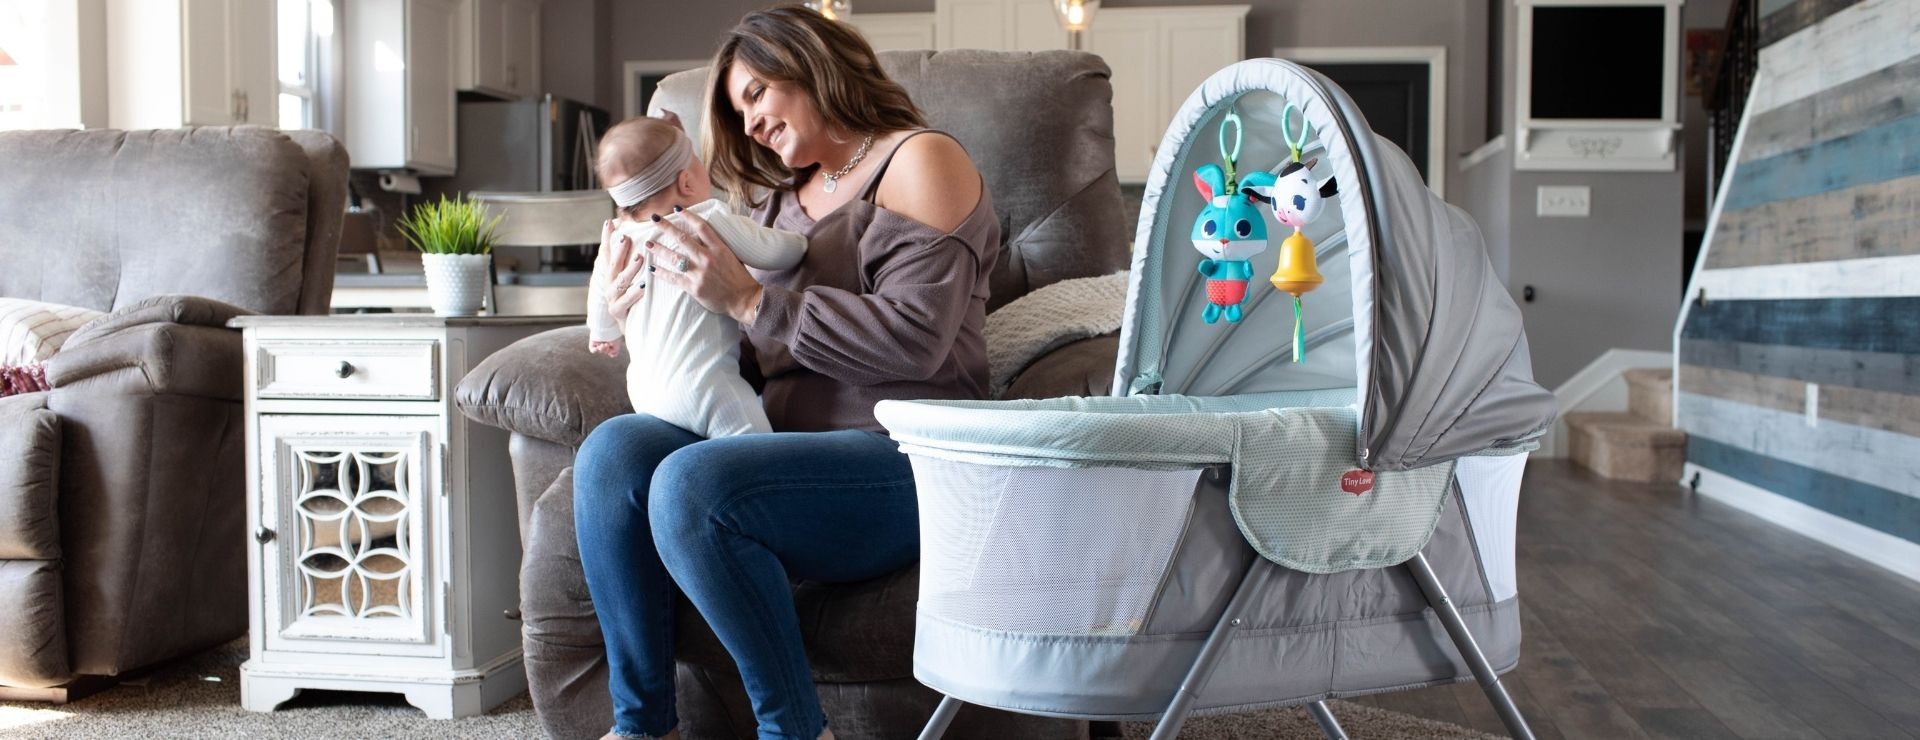 Portable and light, the bassinet lets you keep your little one close by